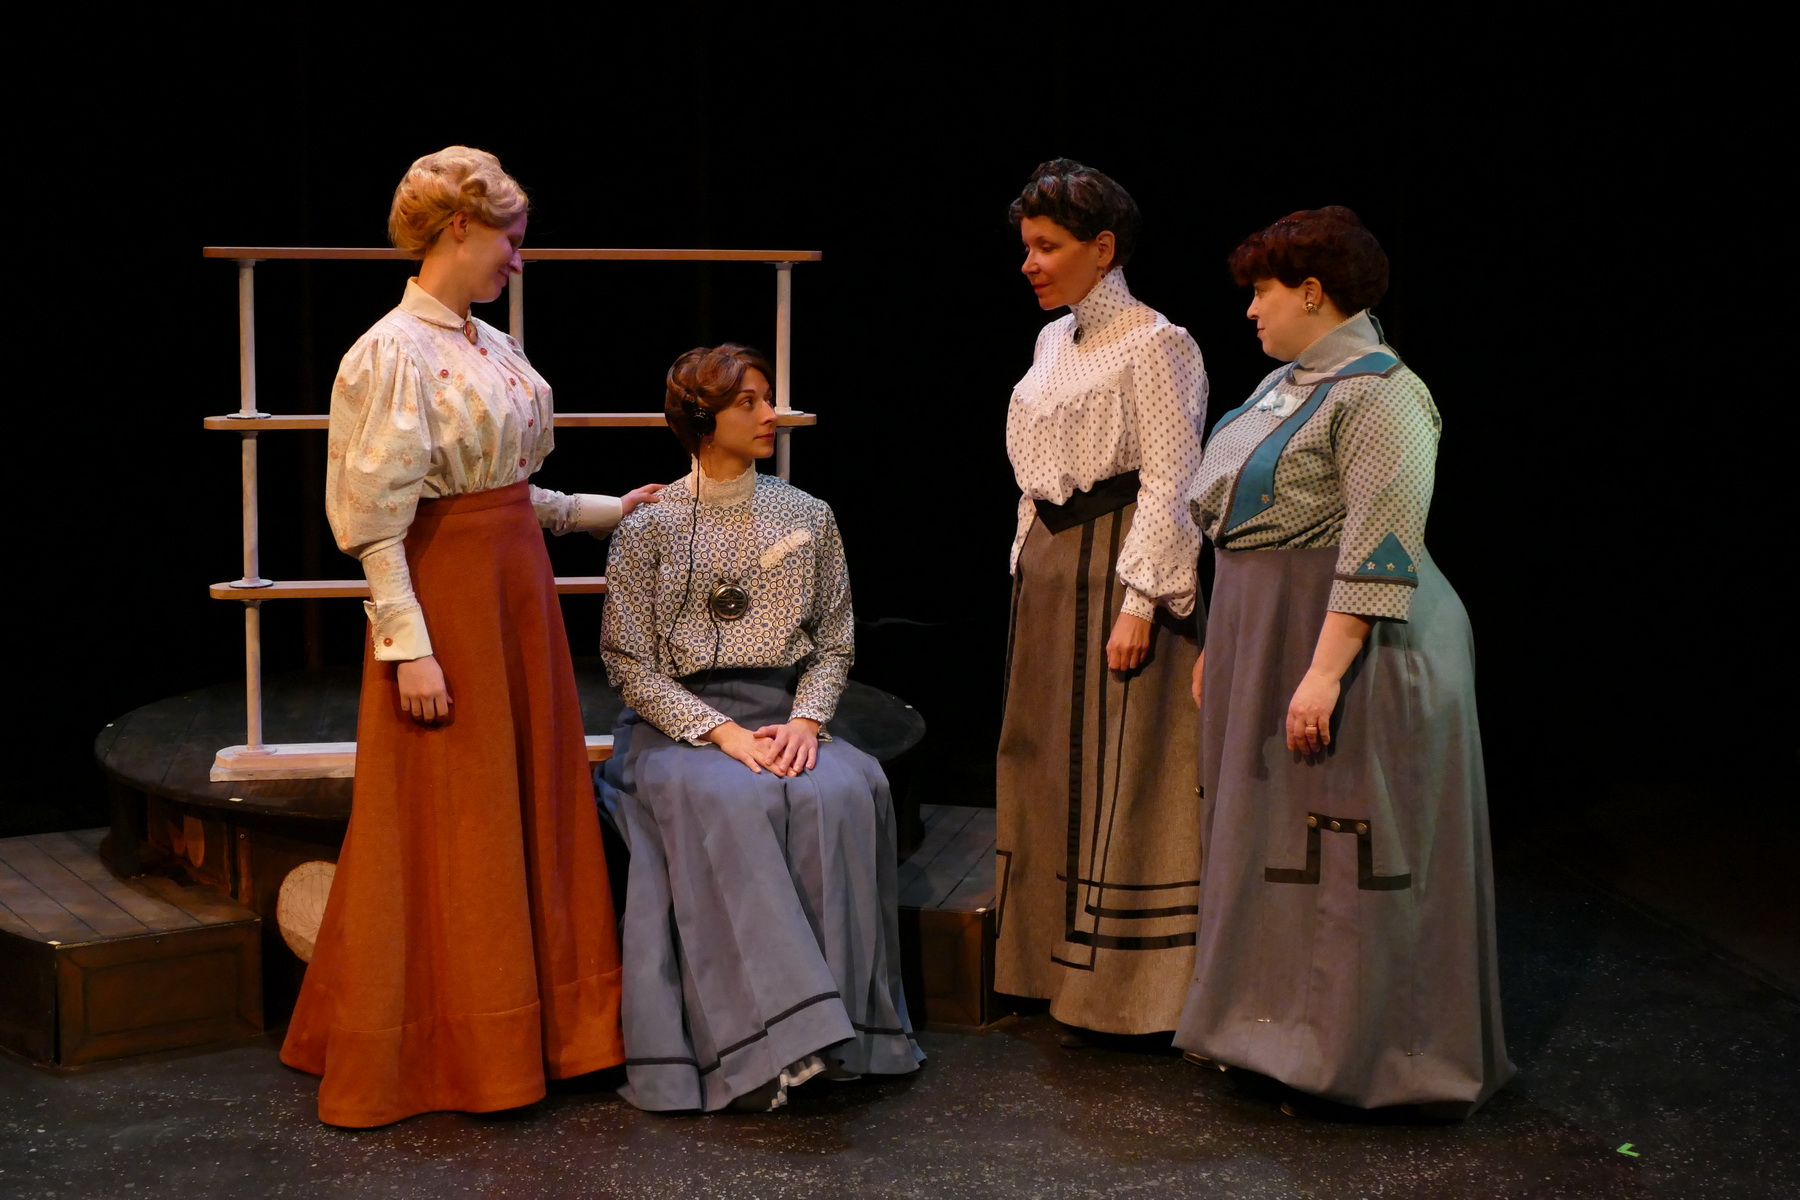 Jill Kenderes as Margaret Leavitt, Brittany Gaul as Henrietta Leavitt, Pam Matthews as Annie Cannon and Molly Clay as Williamina Fleming